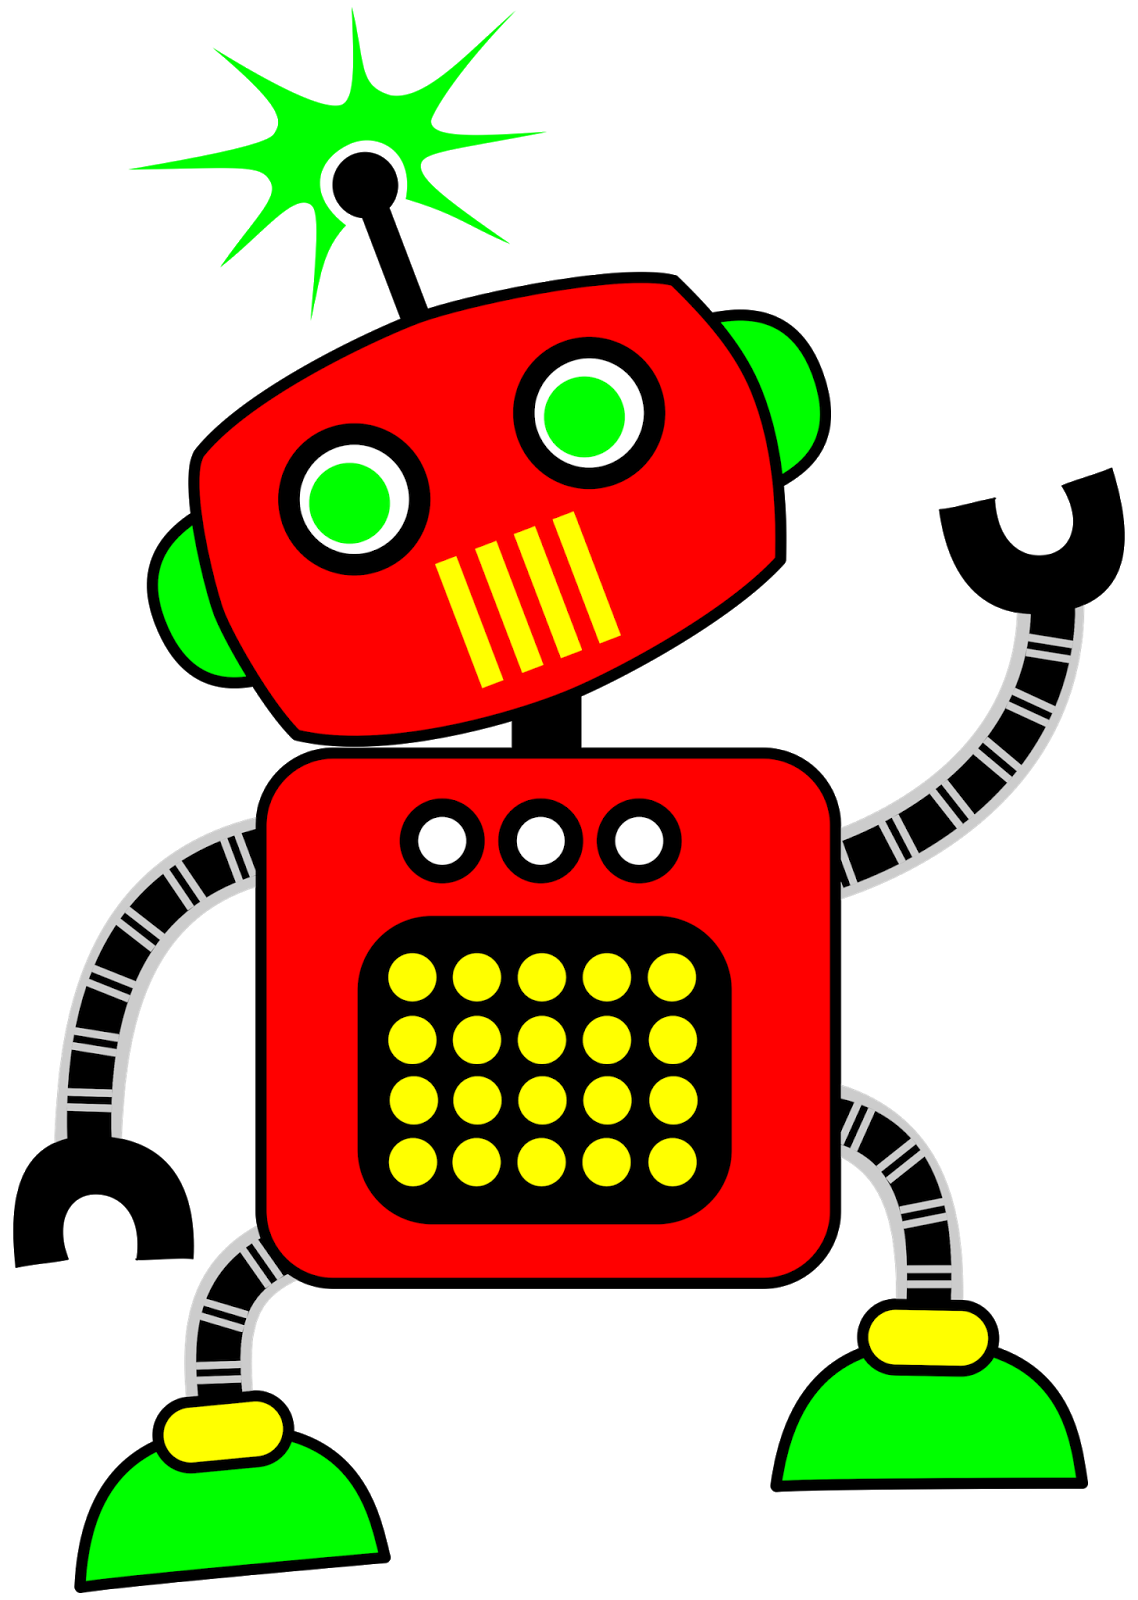 png library stock Classroom treasures. Robot clipart.